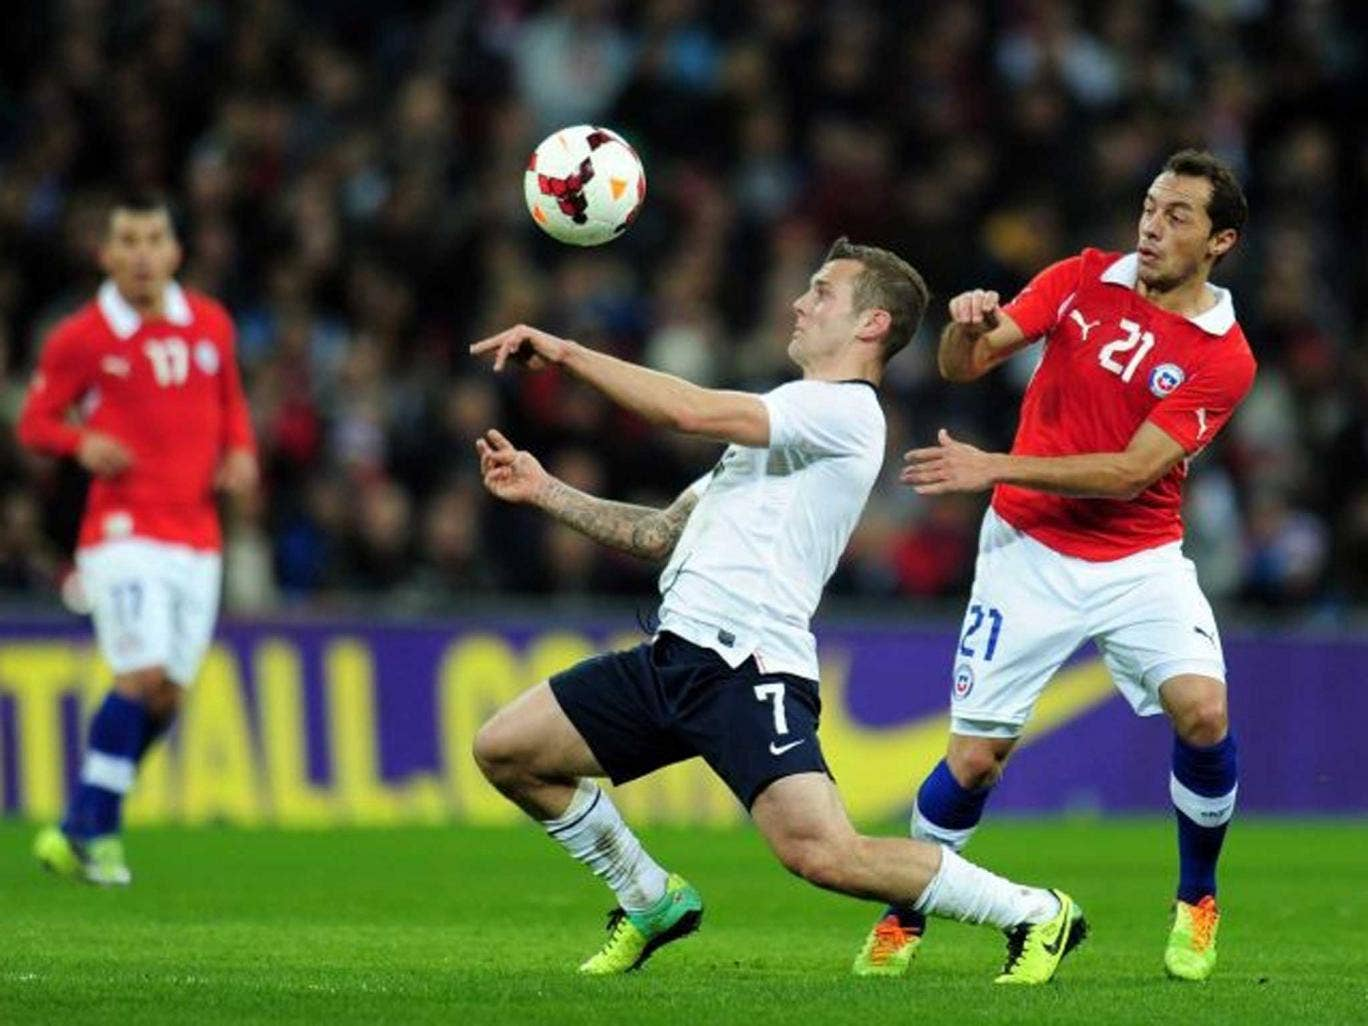 The eyes have it: Jack Wilshere, England's key midfielder, shields the ball from Chile's Marcelo Diaz at Wembley on Friday